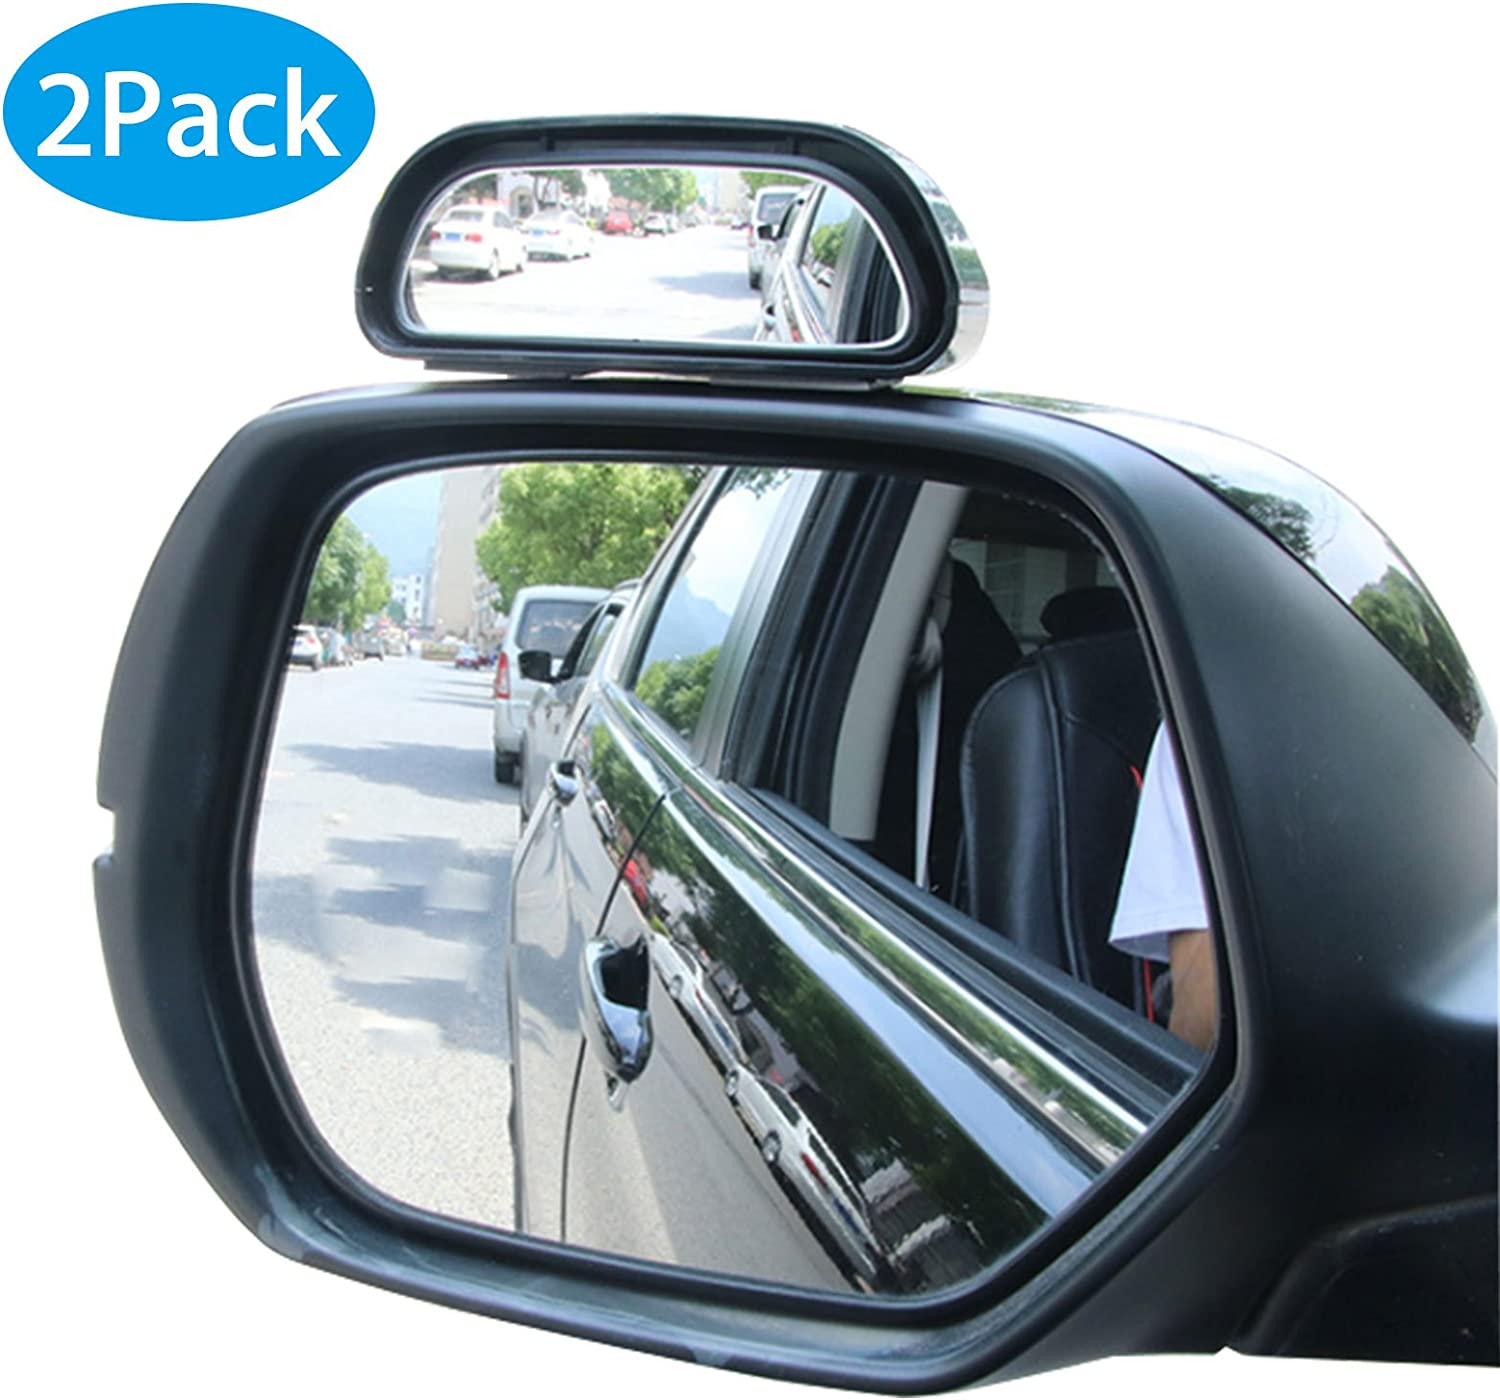 TOMALL 2 in 1 Car Blind Spot Mirror 360 Rotation Adjustable HD Glass Wide Angle Convex Rear View Mirror Blind Spot for Front//Rear wheels Observation Self Adhesive Universal Accessories Left